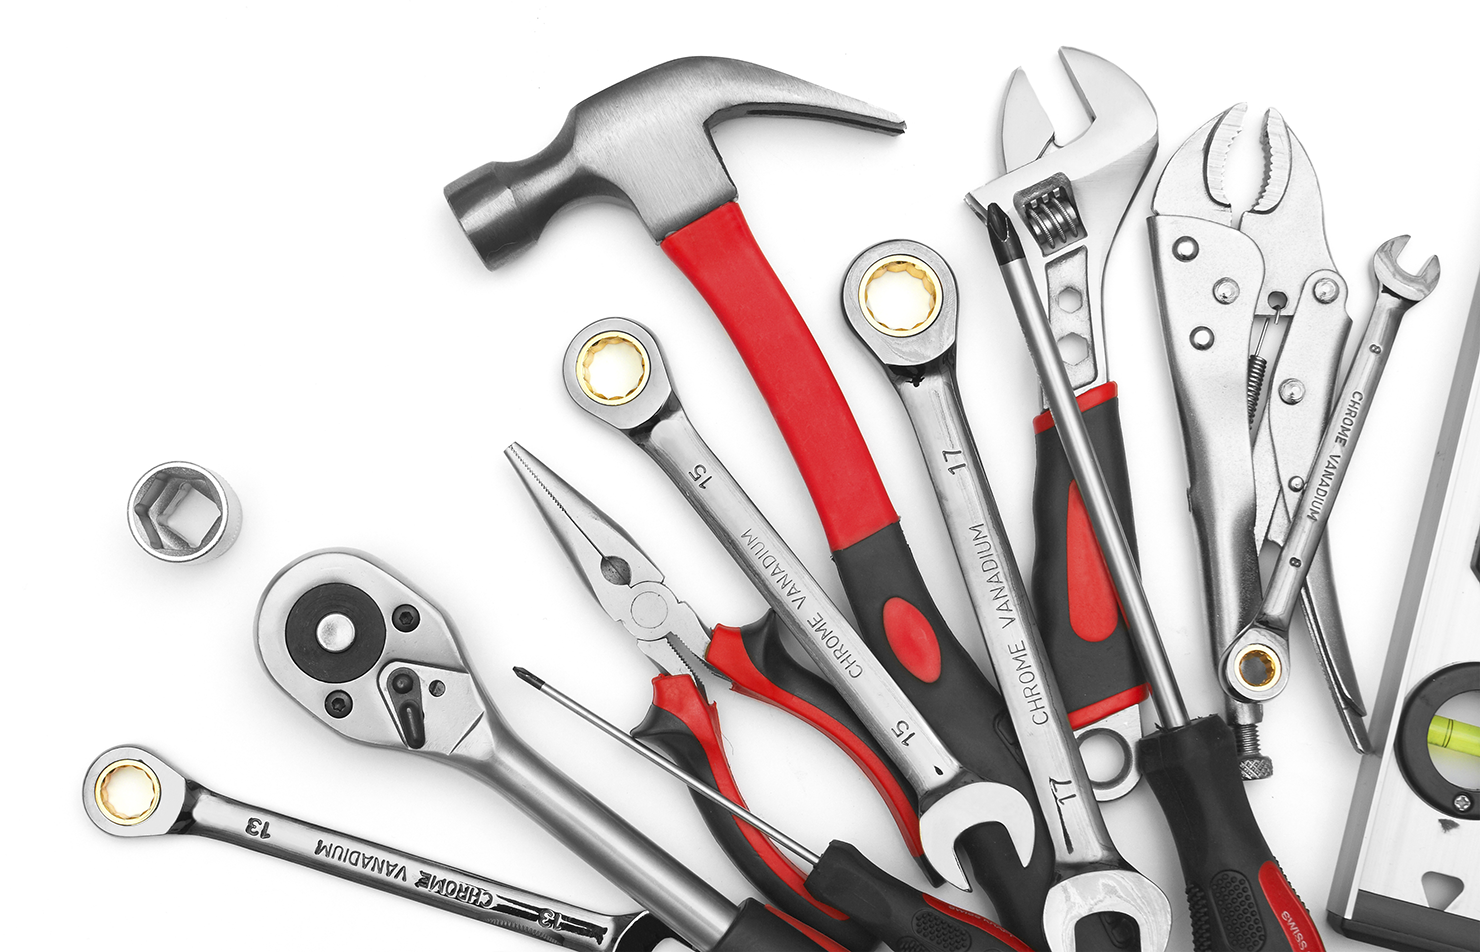 Tools Png & Free Tools.png Transparent Images #9501.